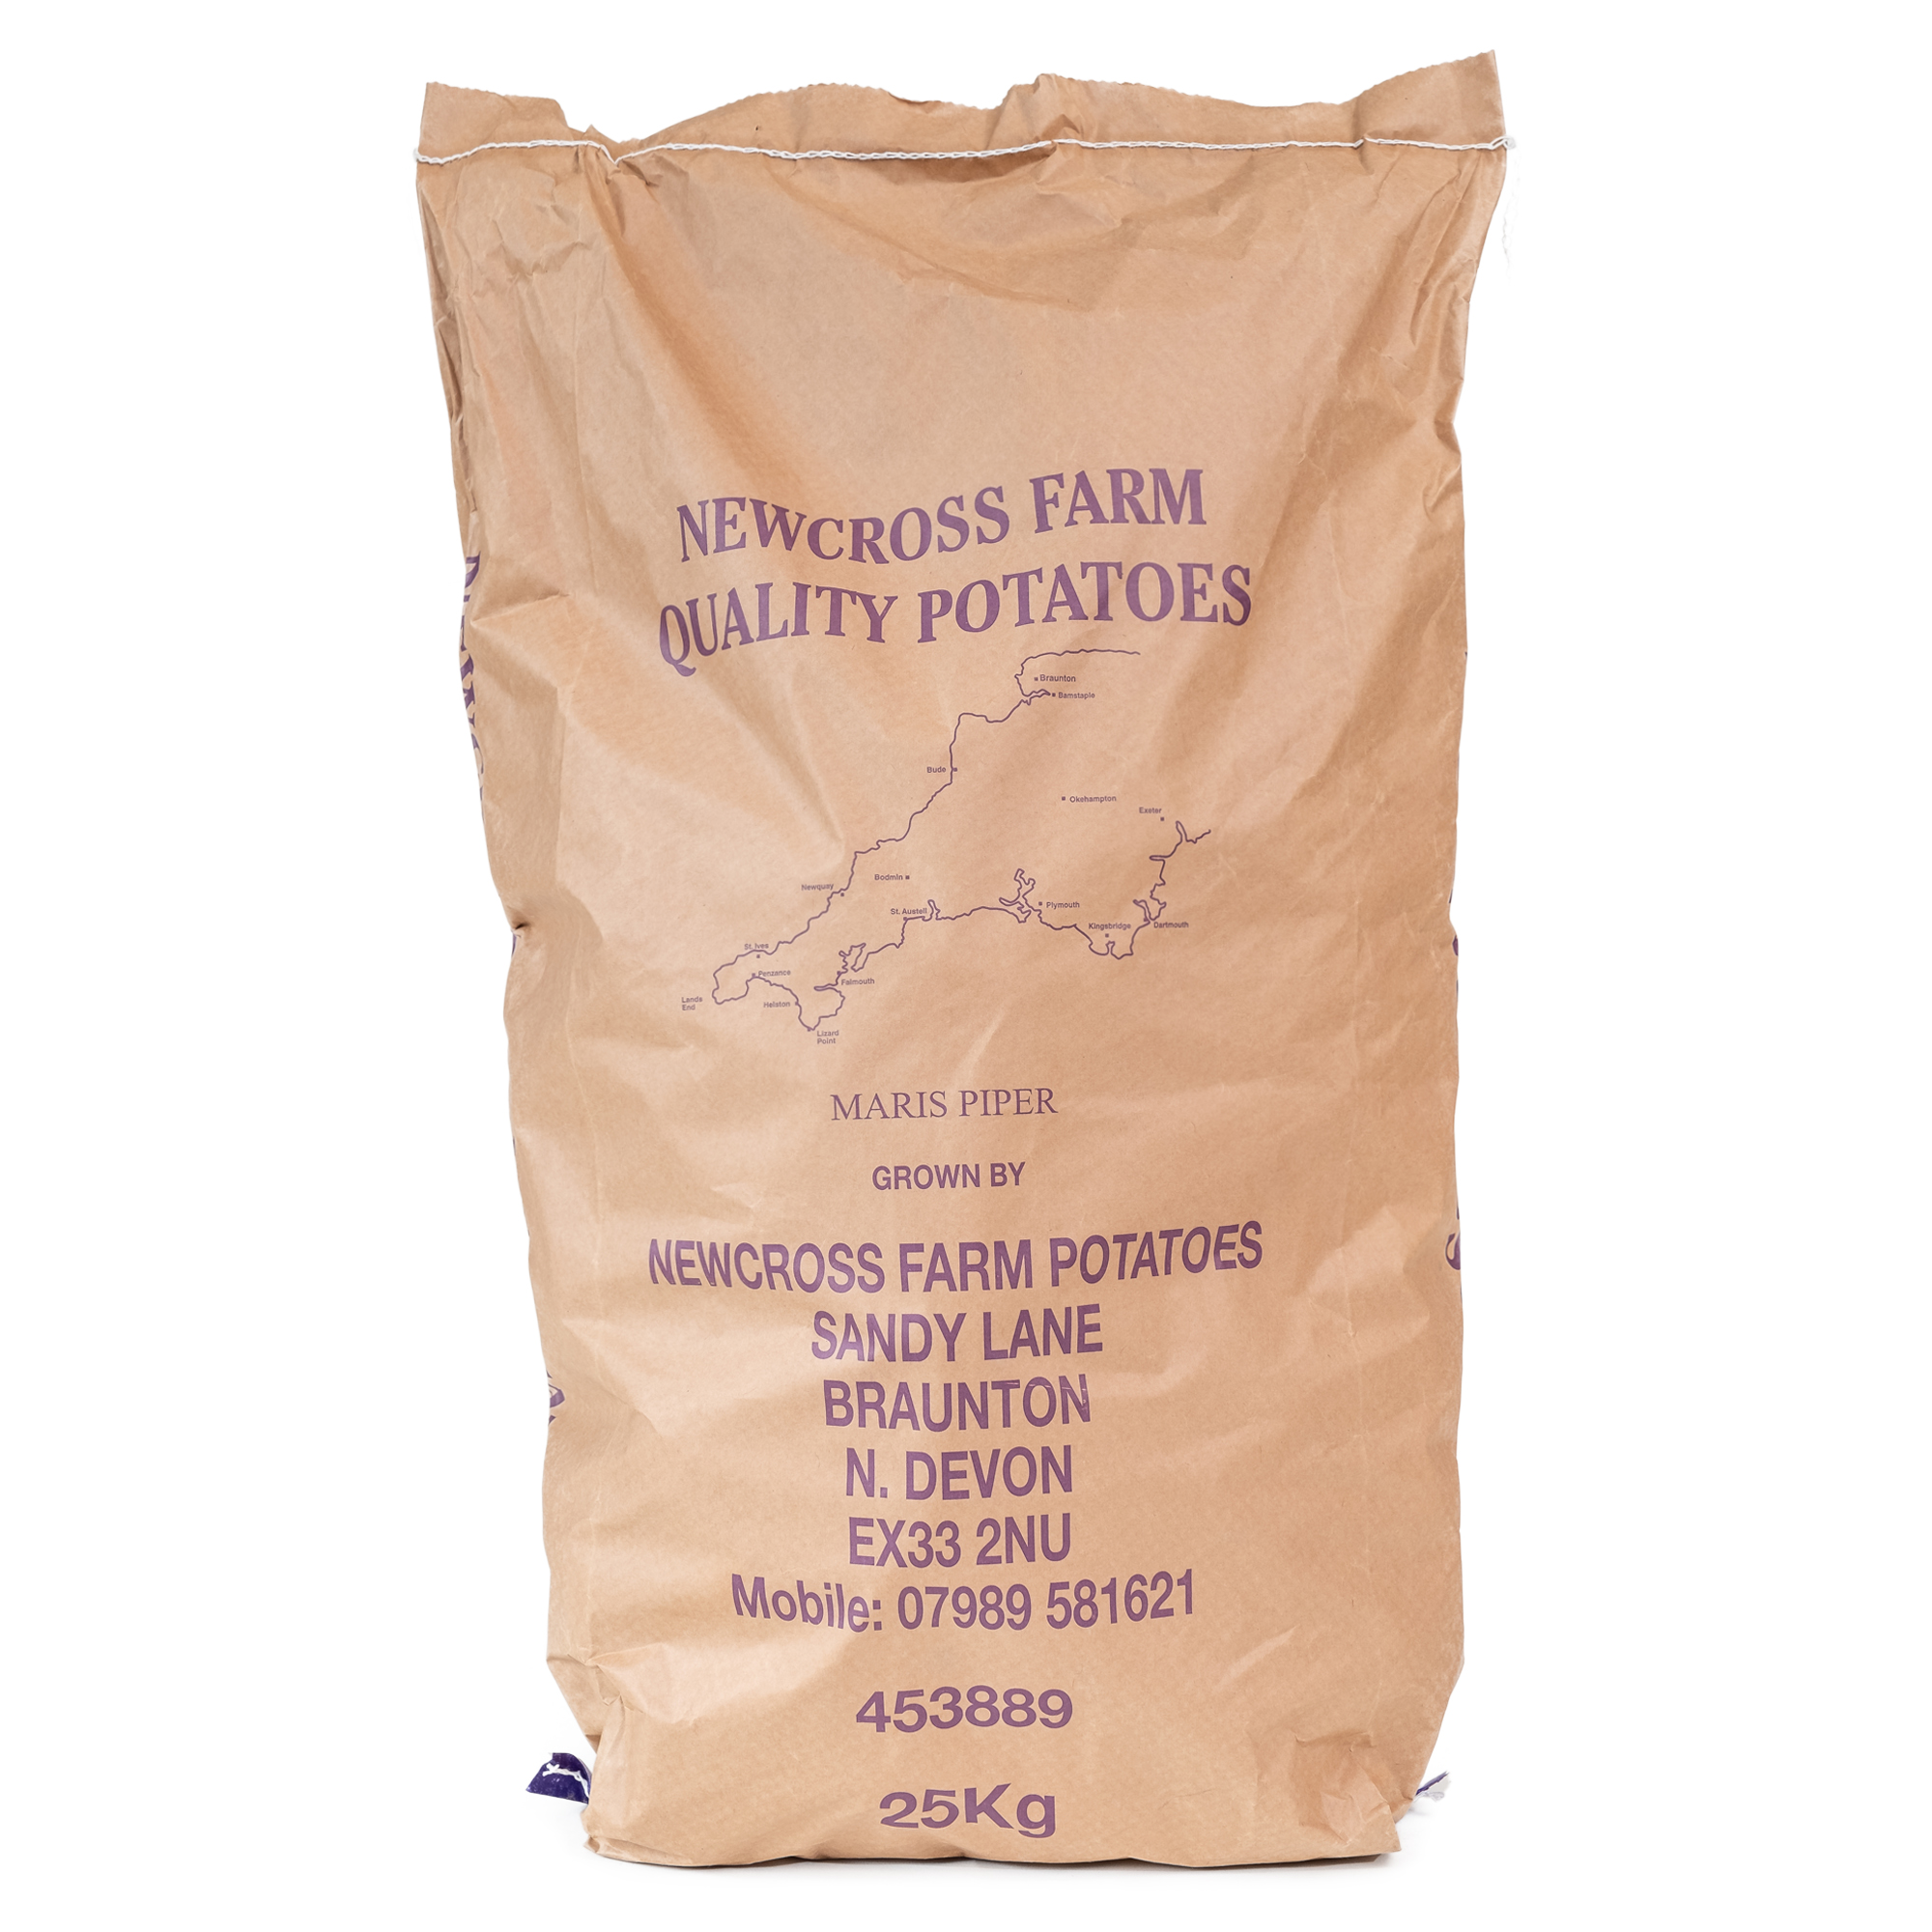 Potatoes - Maris Piper - 25kg